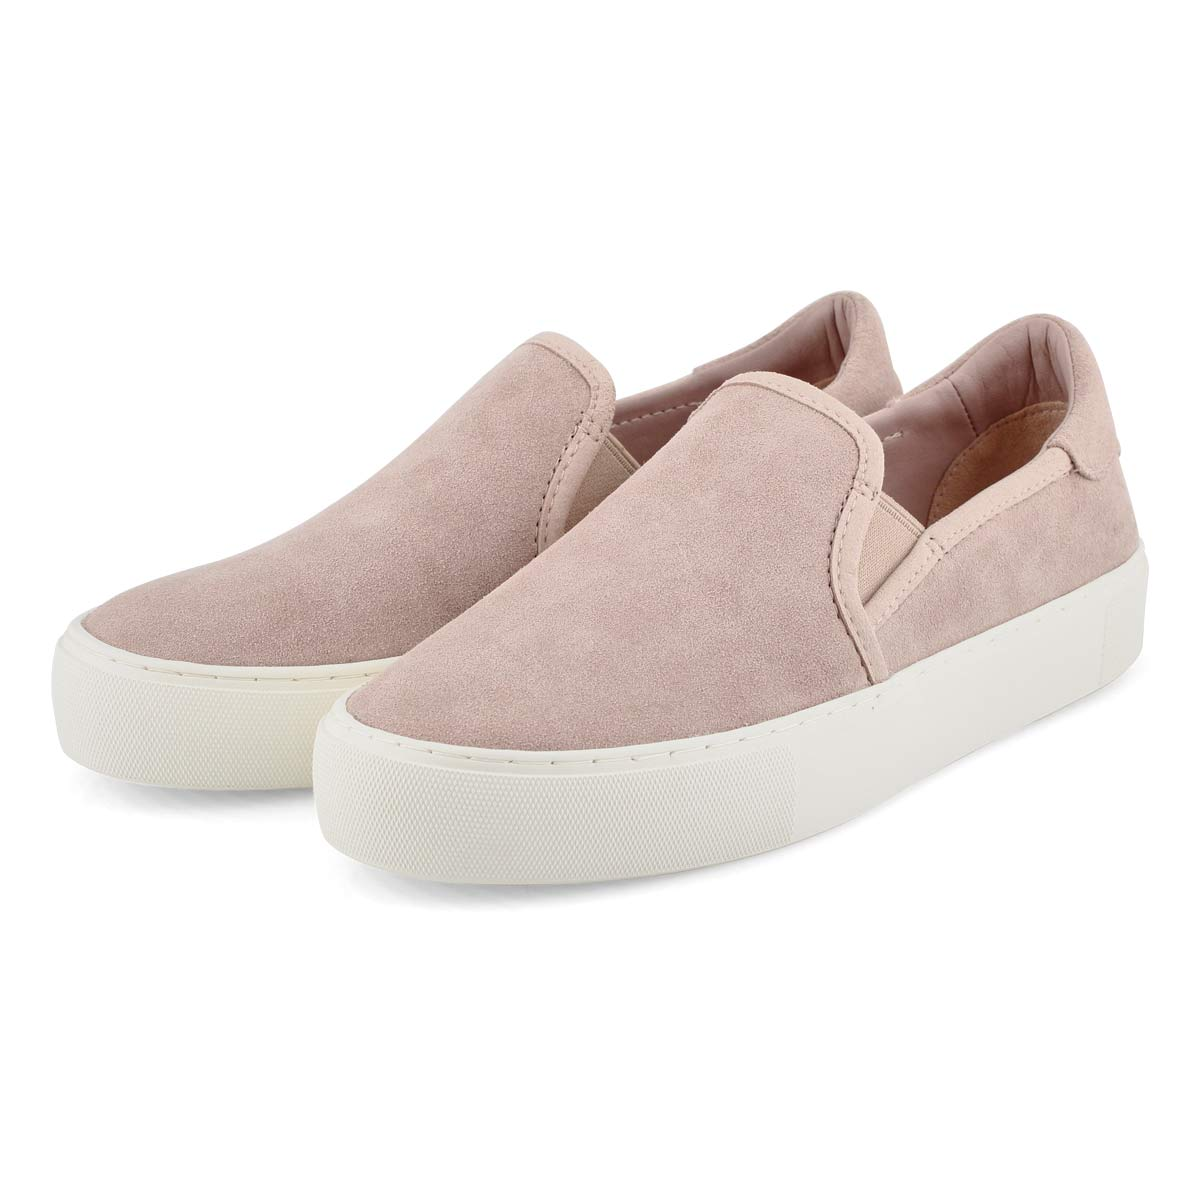 Lds Jass rose tea slip on shoe